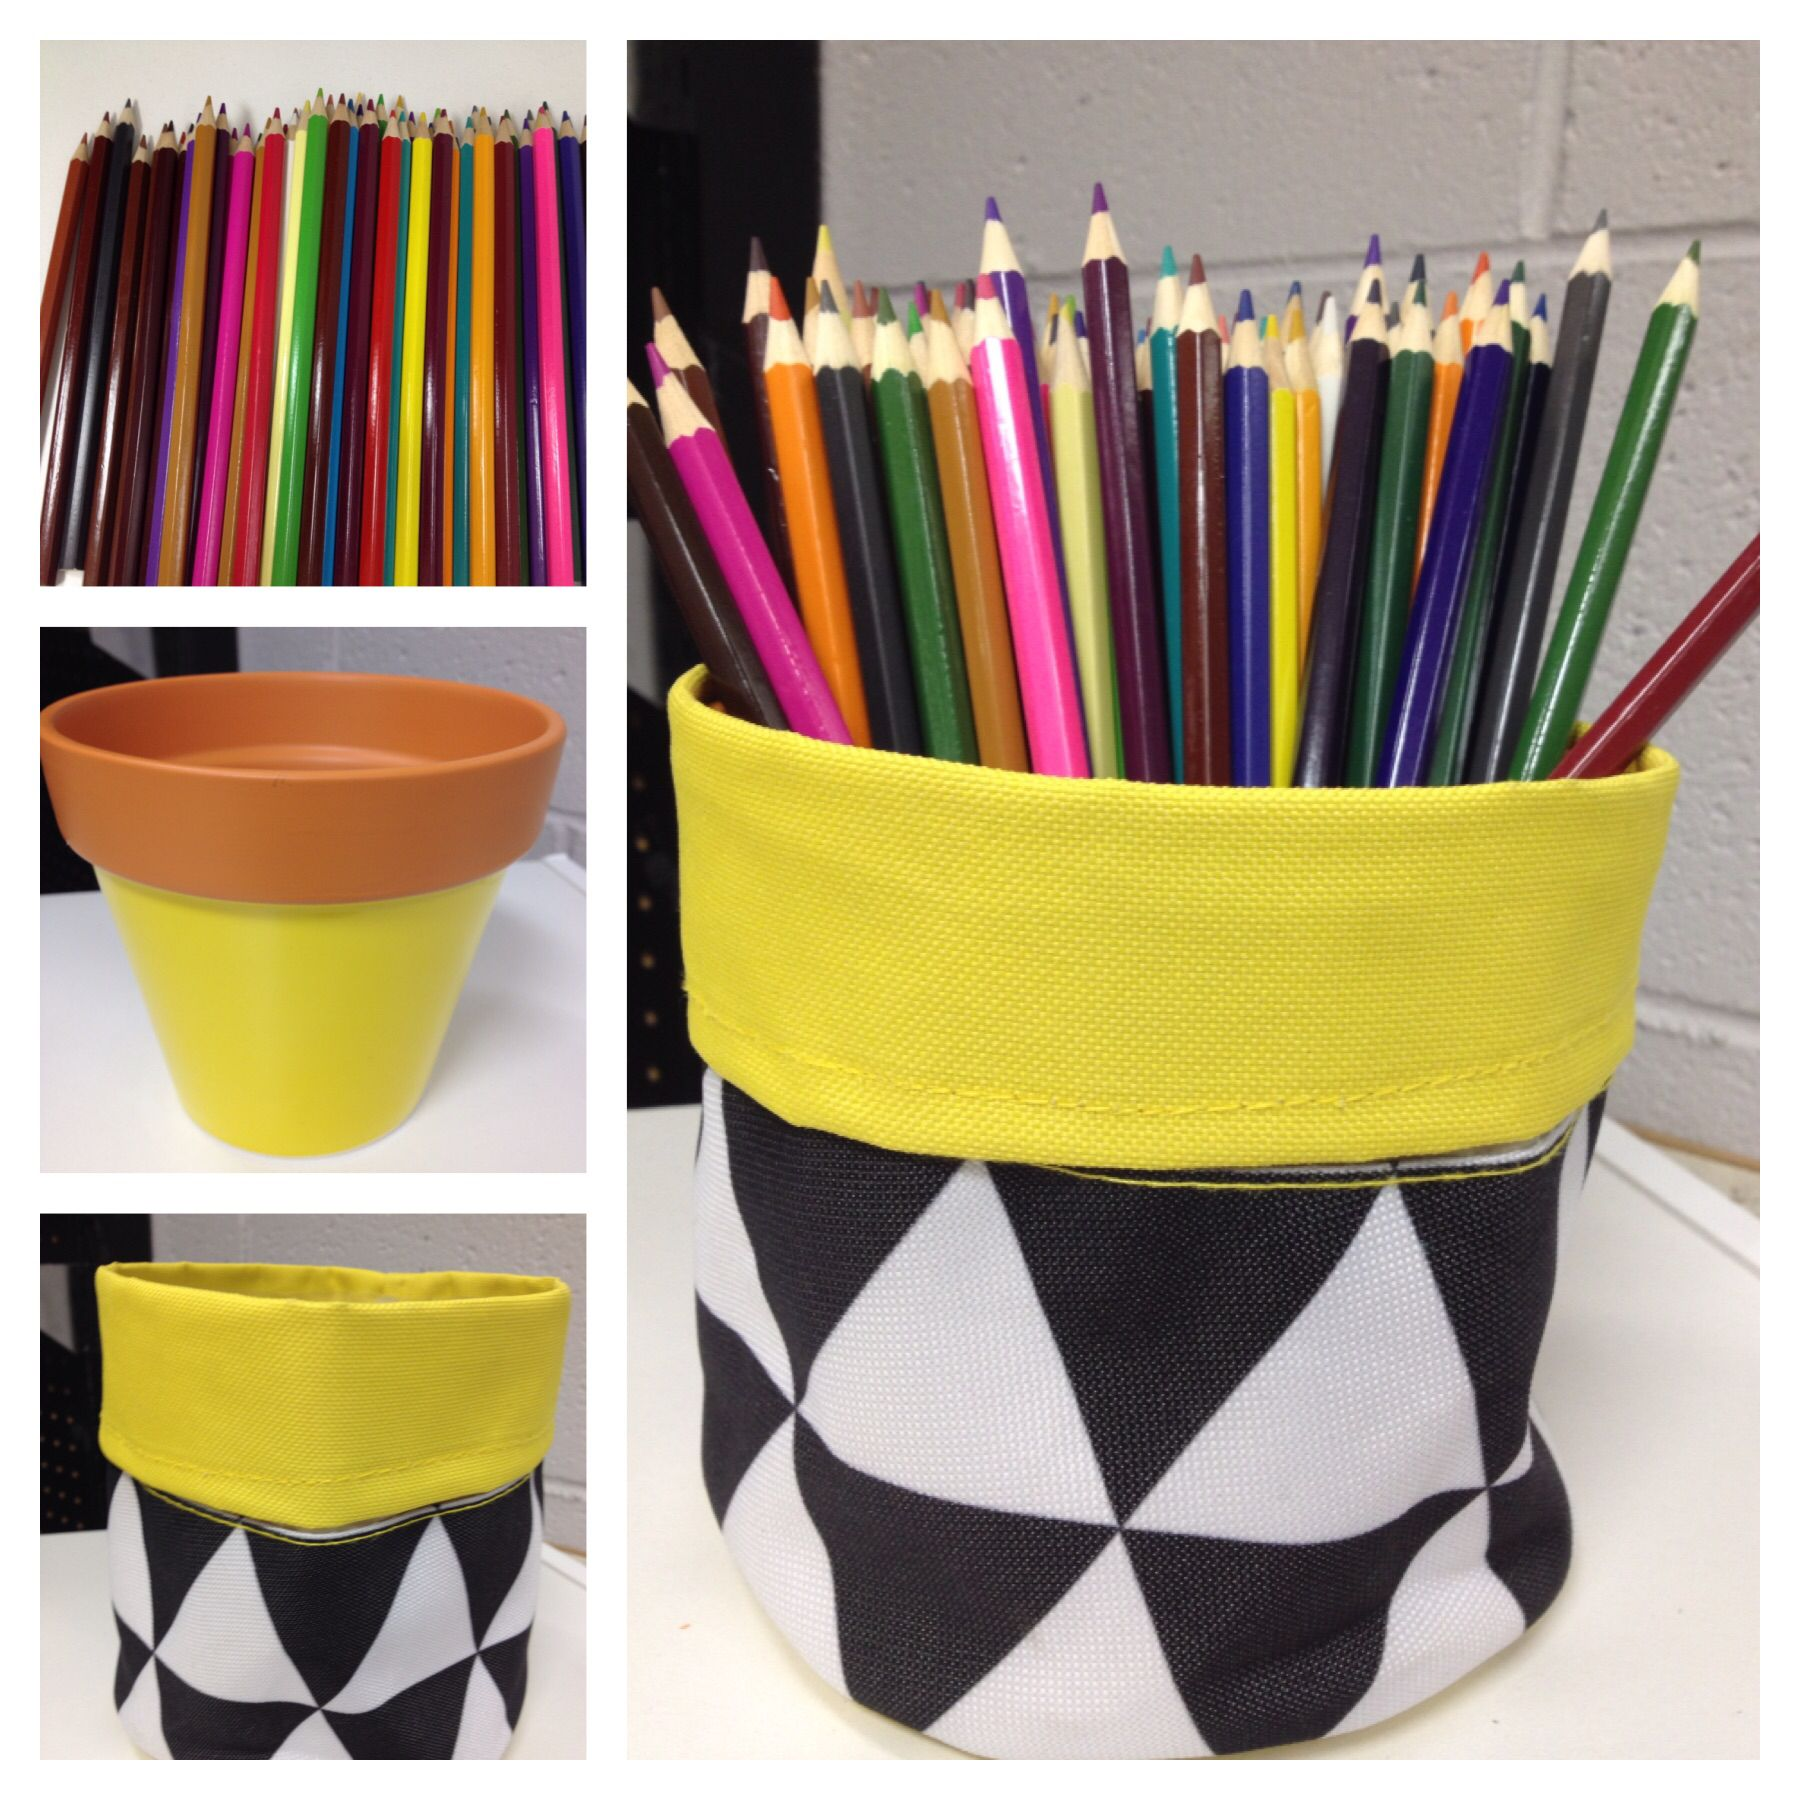 Grown up colouring books kmart - Easy Pencil Holder Get Some Pencils New Terracotta Pot From Kmart And The New